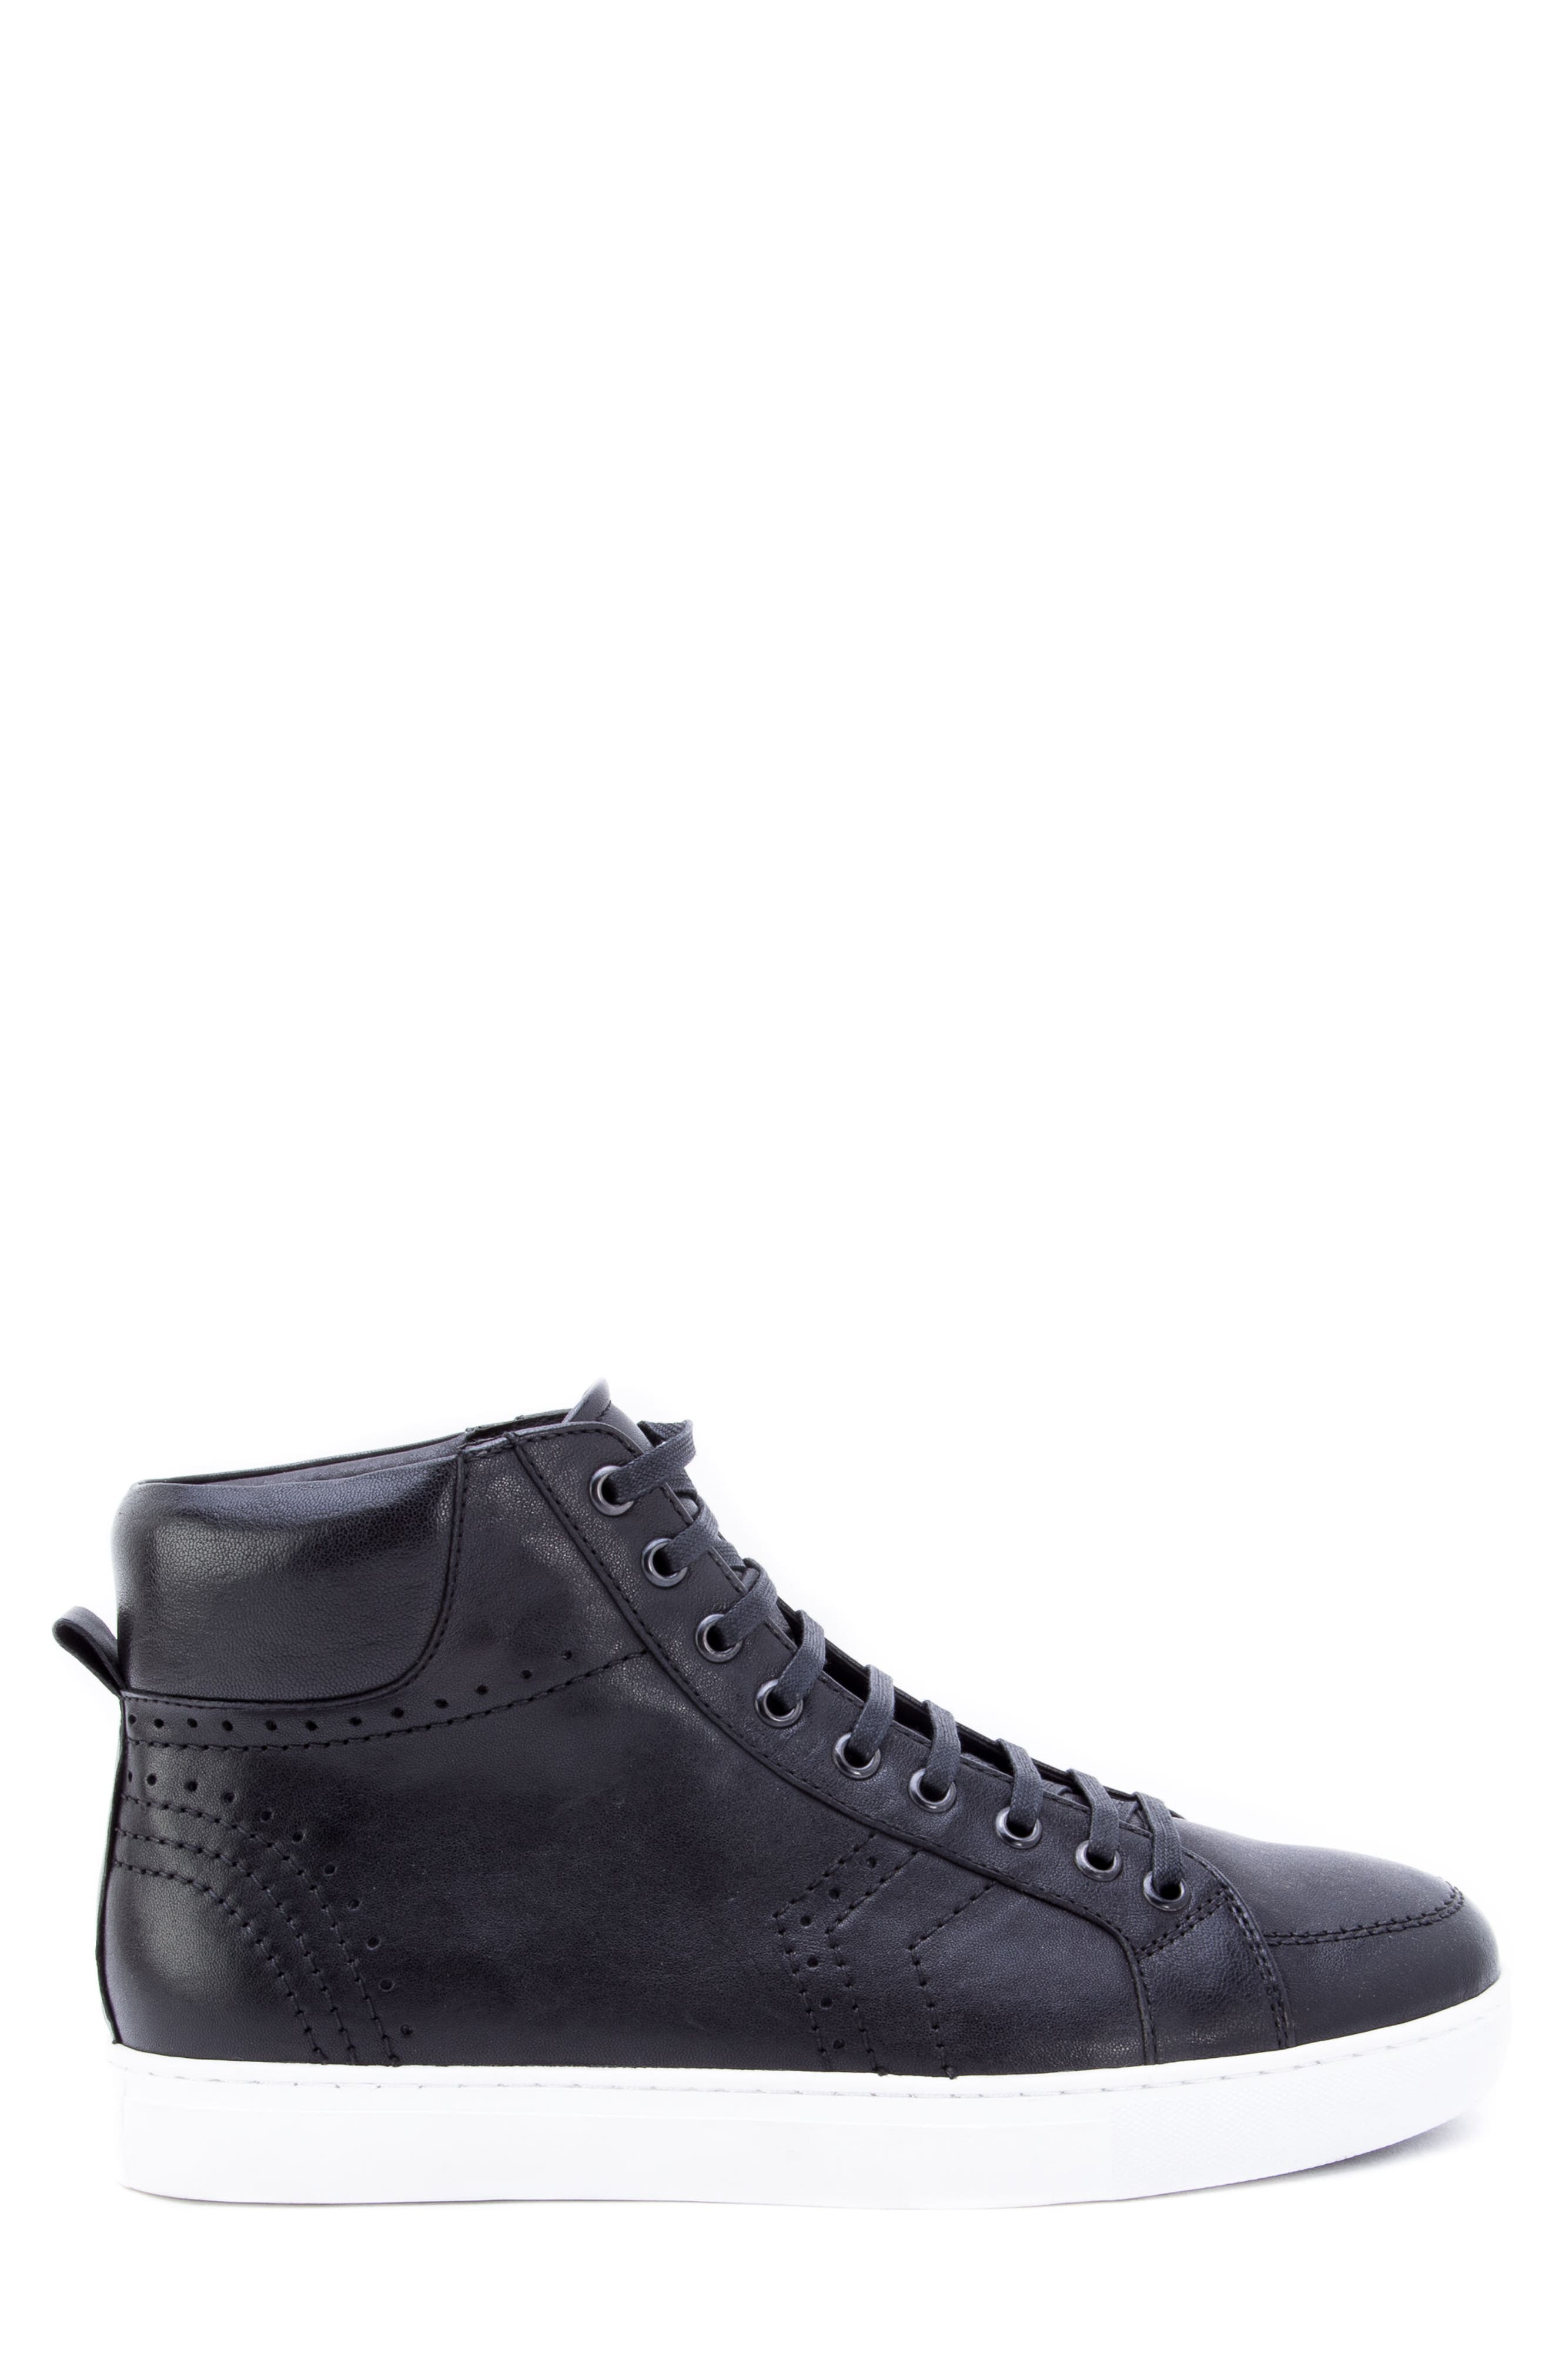 Uglow Perforated High Top Sneaker,                             Alternate thumbnail 3, color,                             BLACK LEATHER